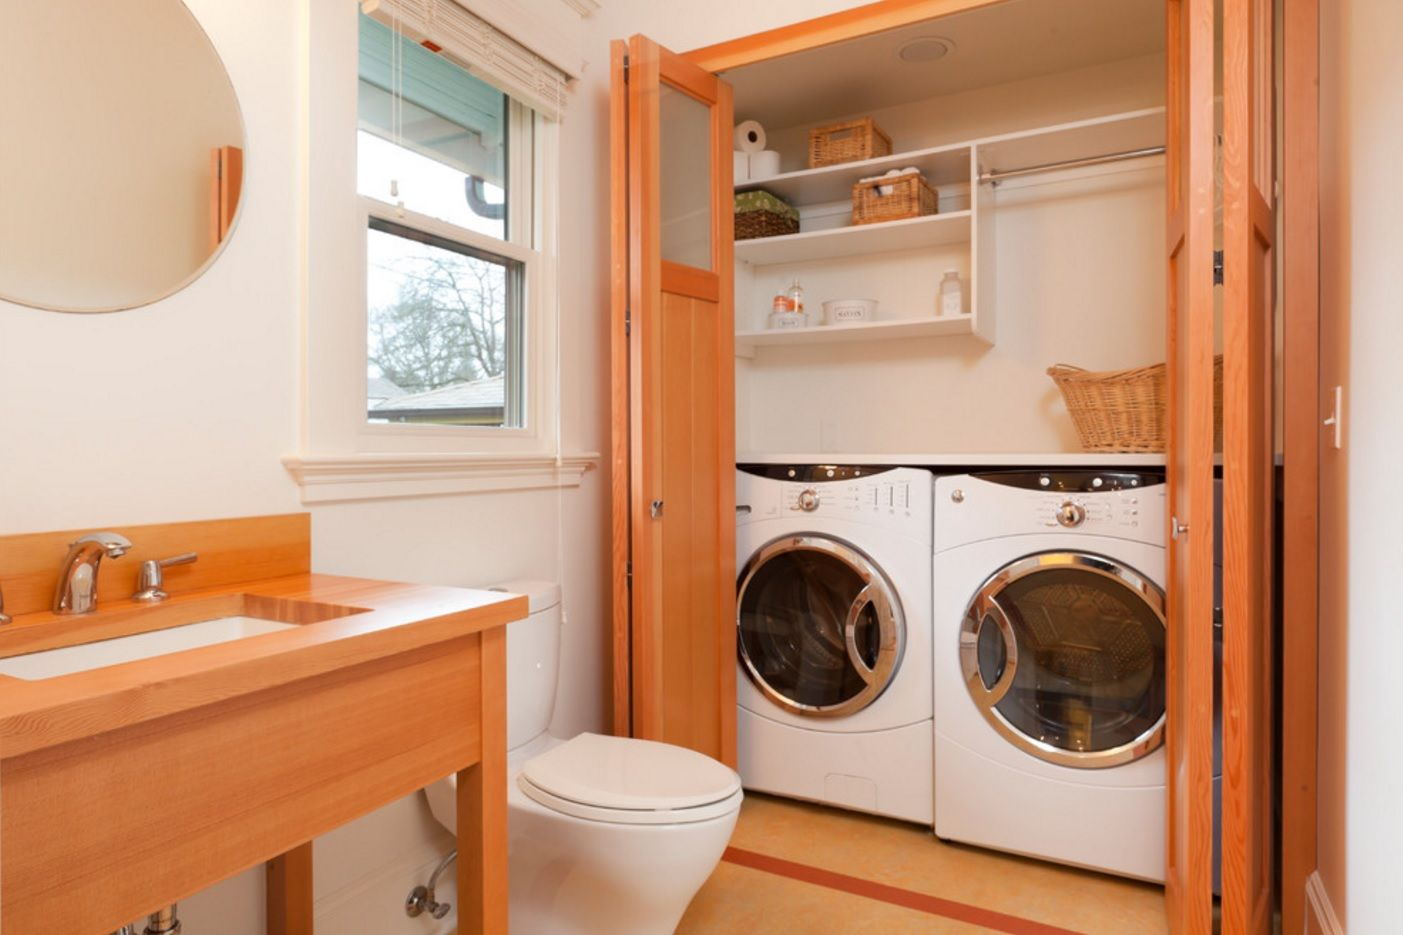 Laundry & Bathroom Combining Ideas with Photos. Closing sliding doors to protect the appliances from water and steam